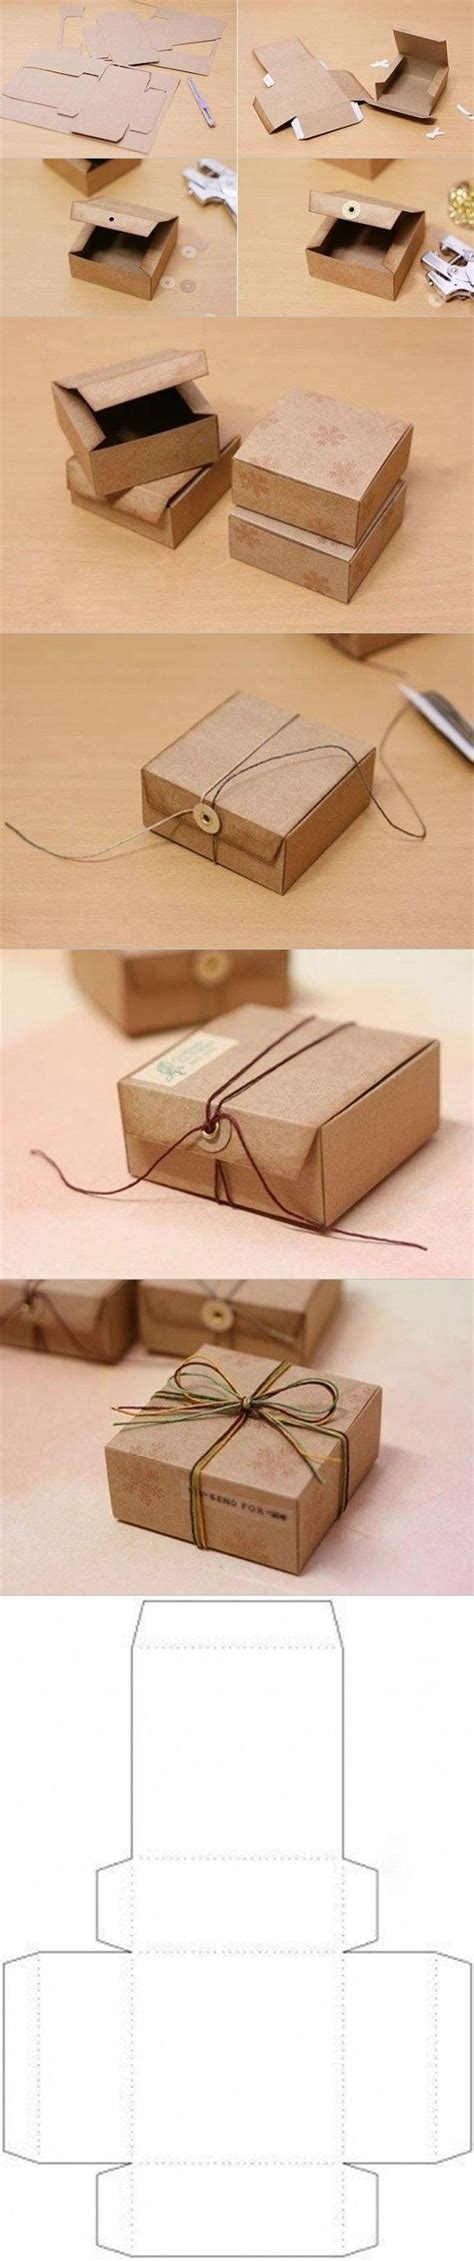 diy small cardboard box diy gift box from cardboard fab diy